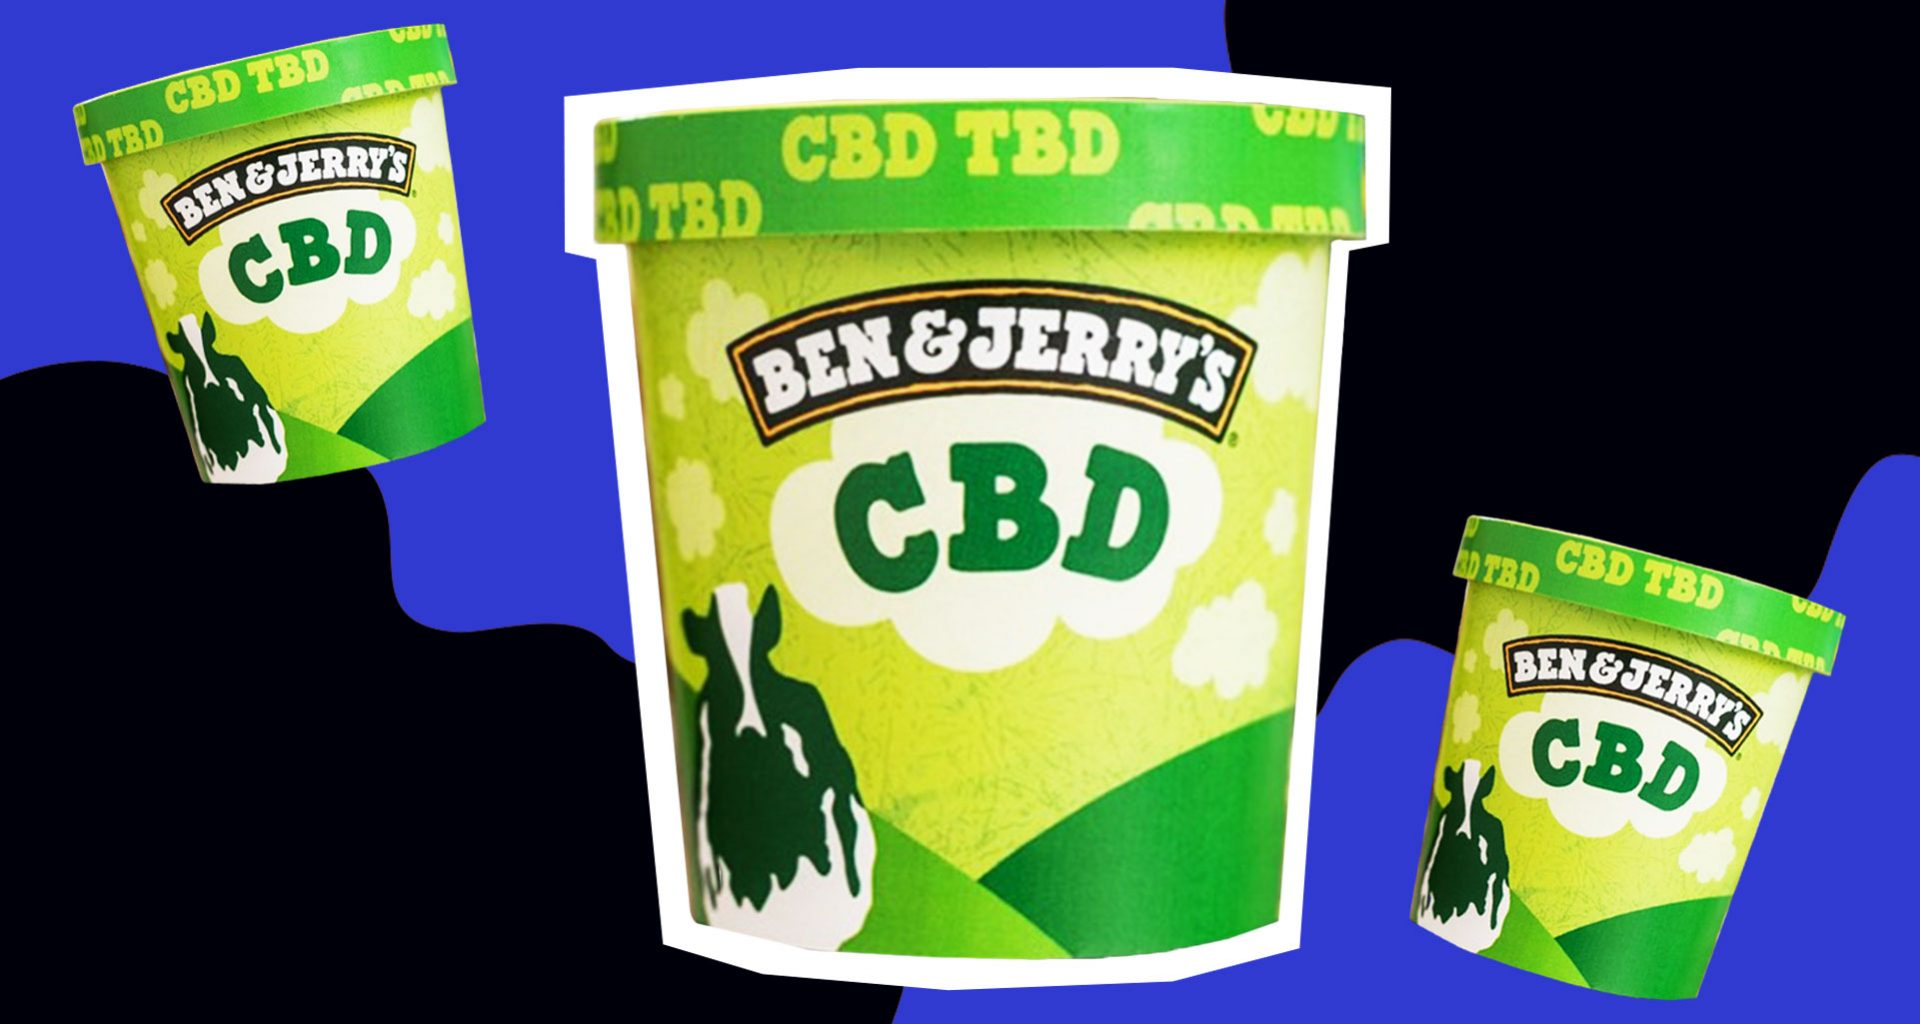 This is what Ben & Jerry's CBD-infused ice cream could look like.